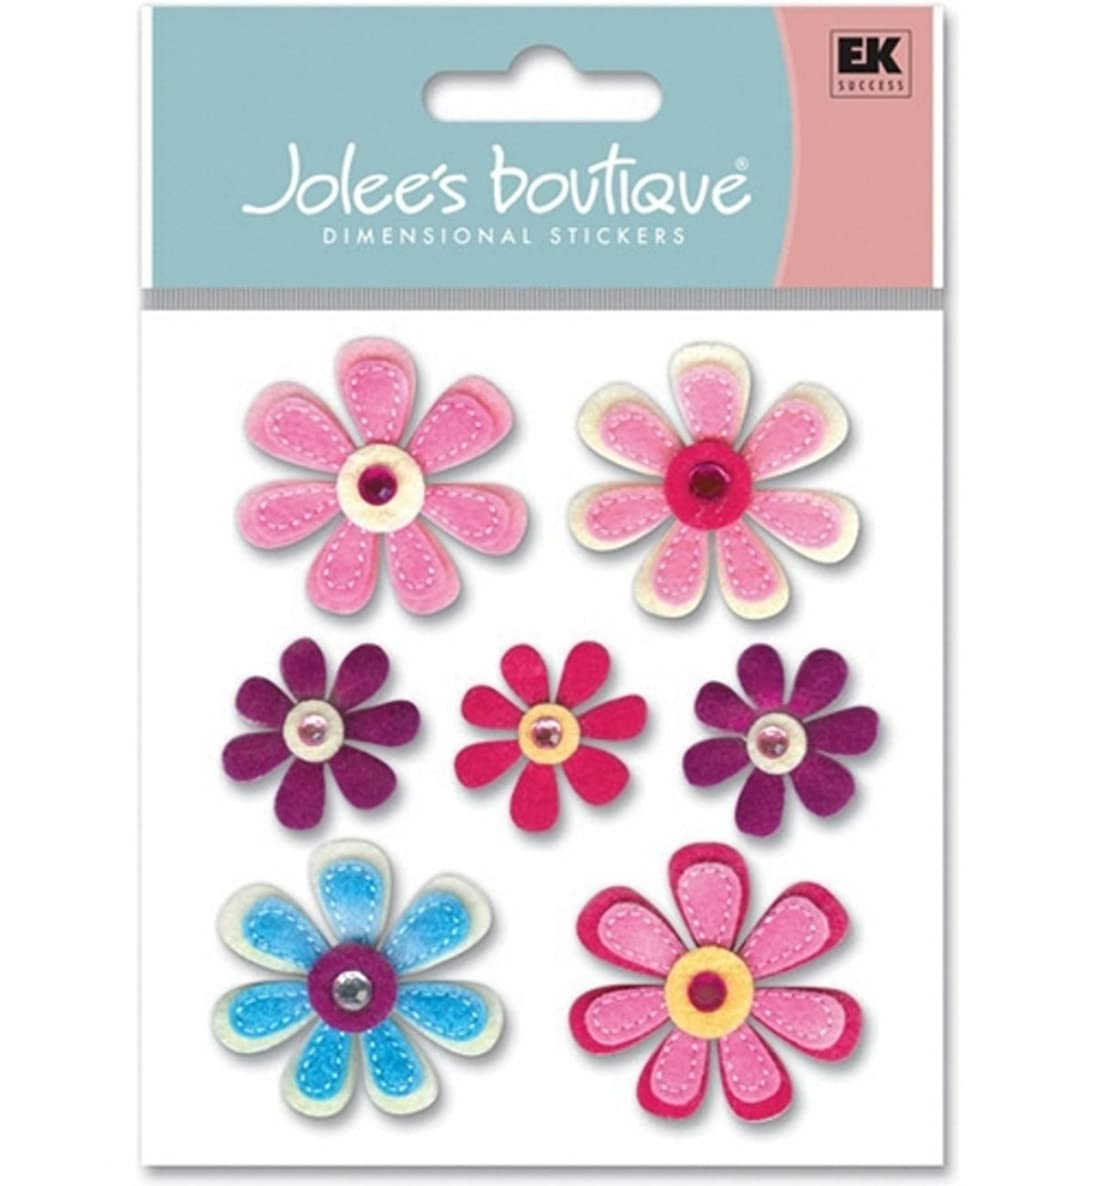 Jolee's Boutique Stickers, Summer Buds